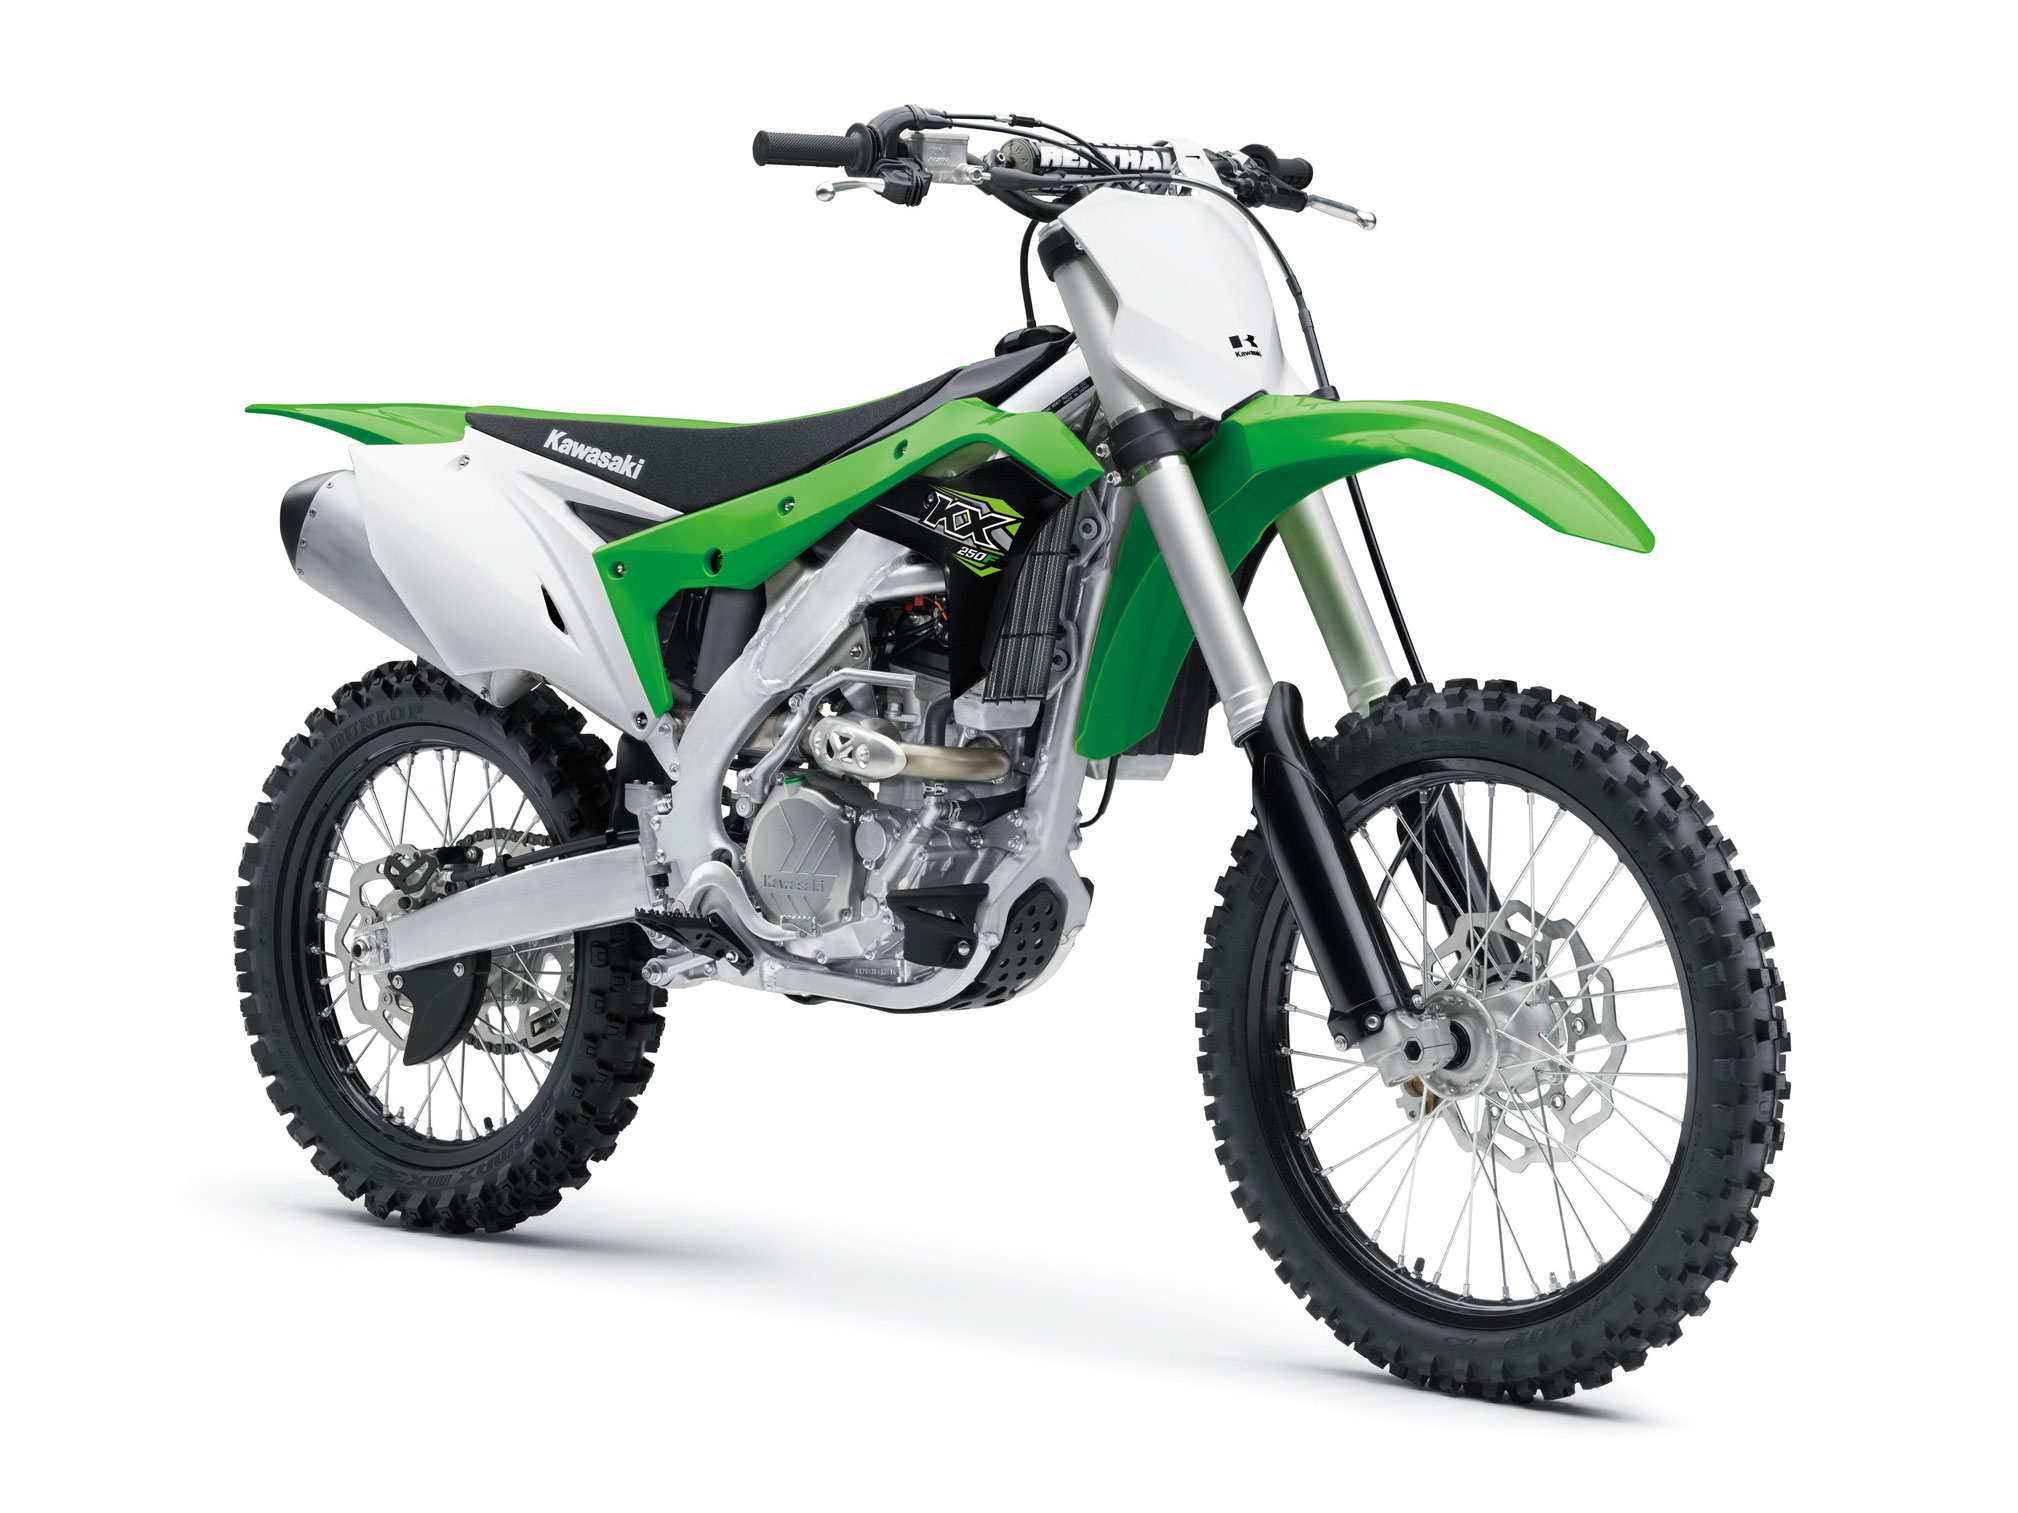 2018 Kawasaki Kx250f Review Totalmotorcycle